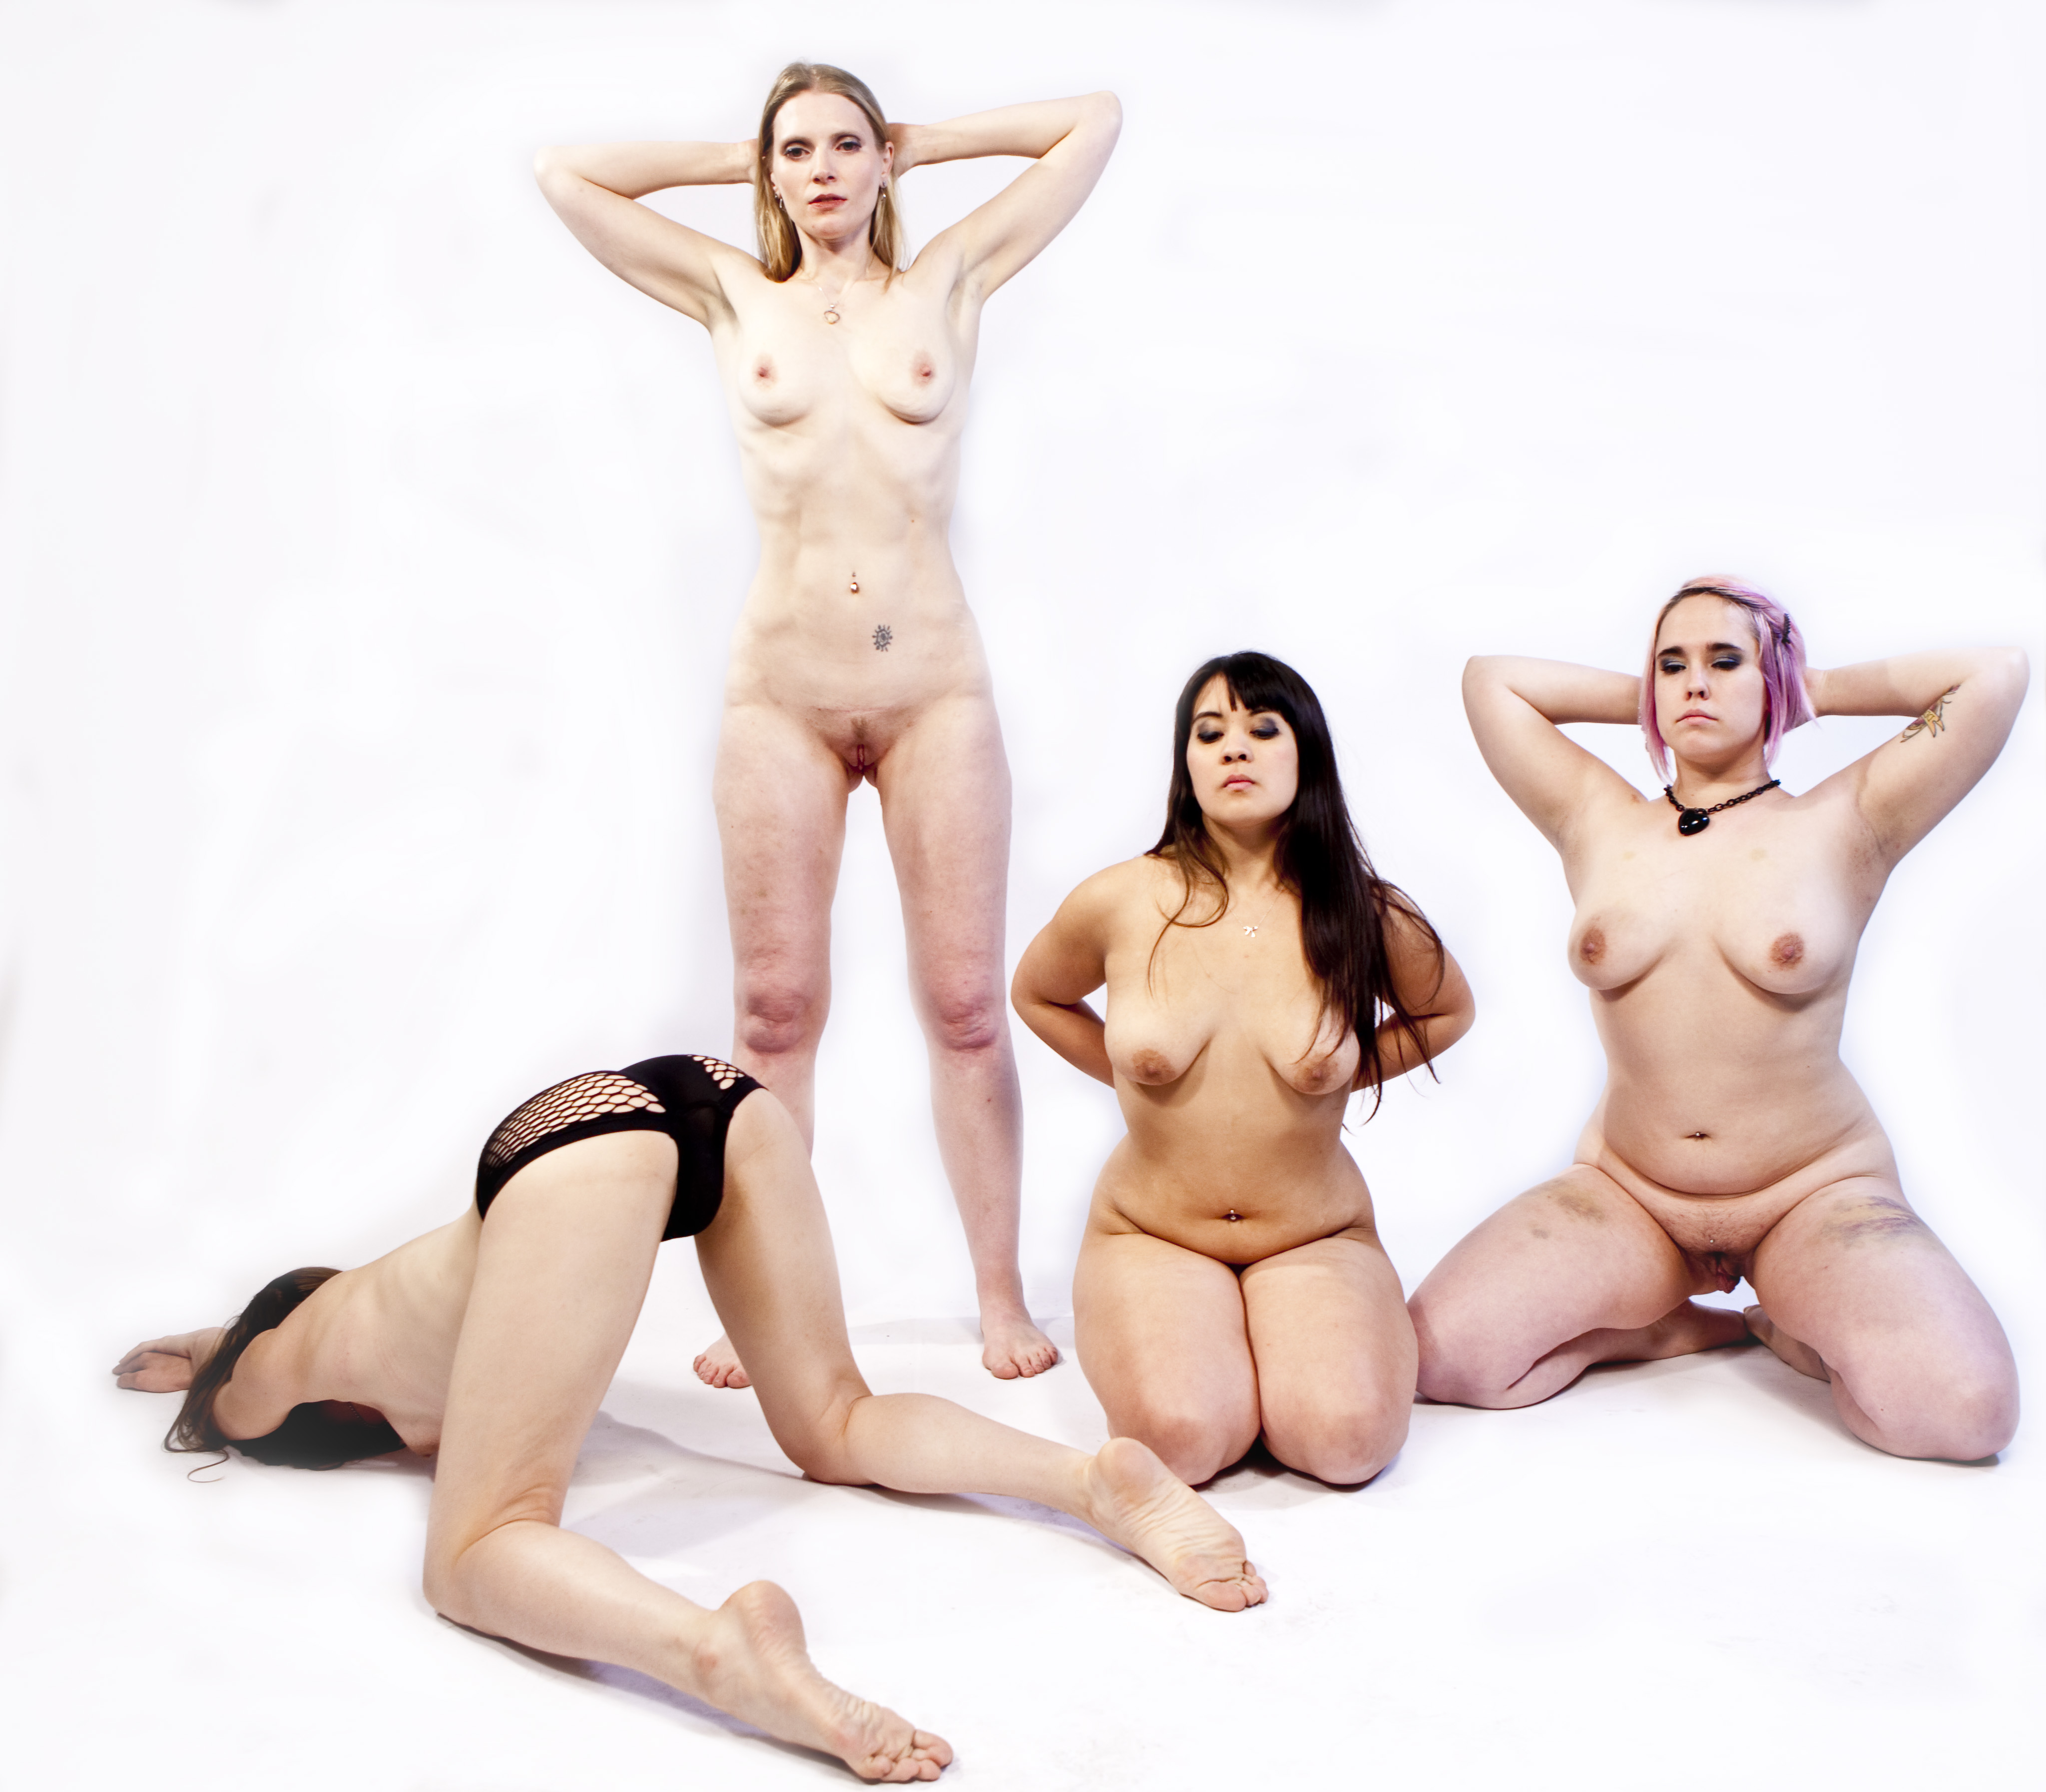 think, wifes black blowjob dick orgy think, that